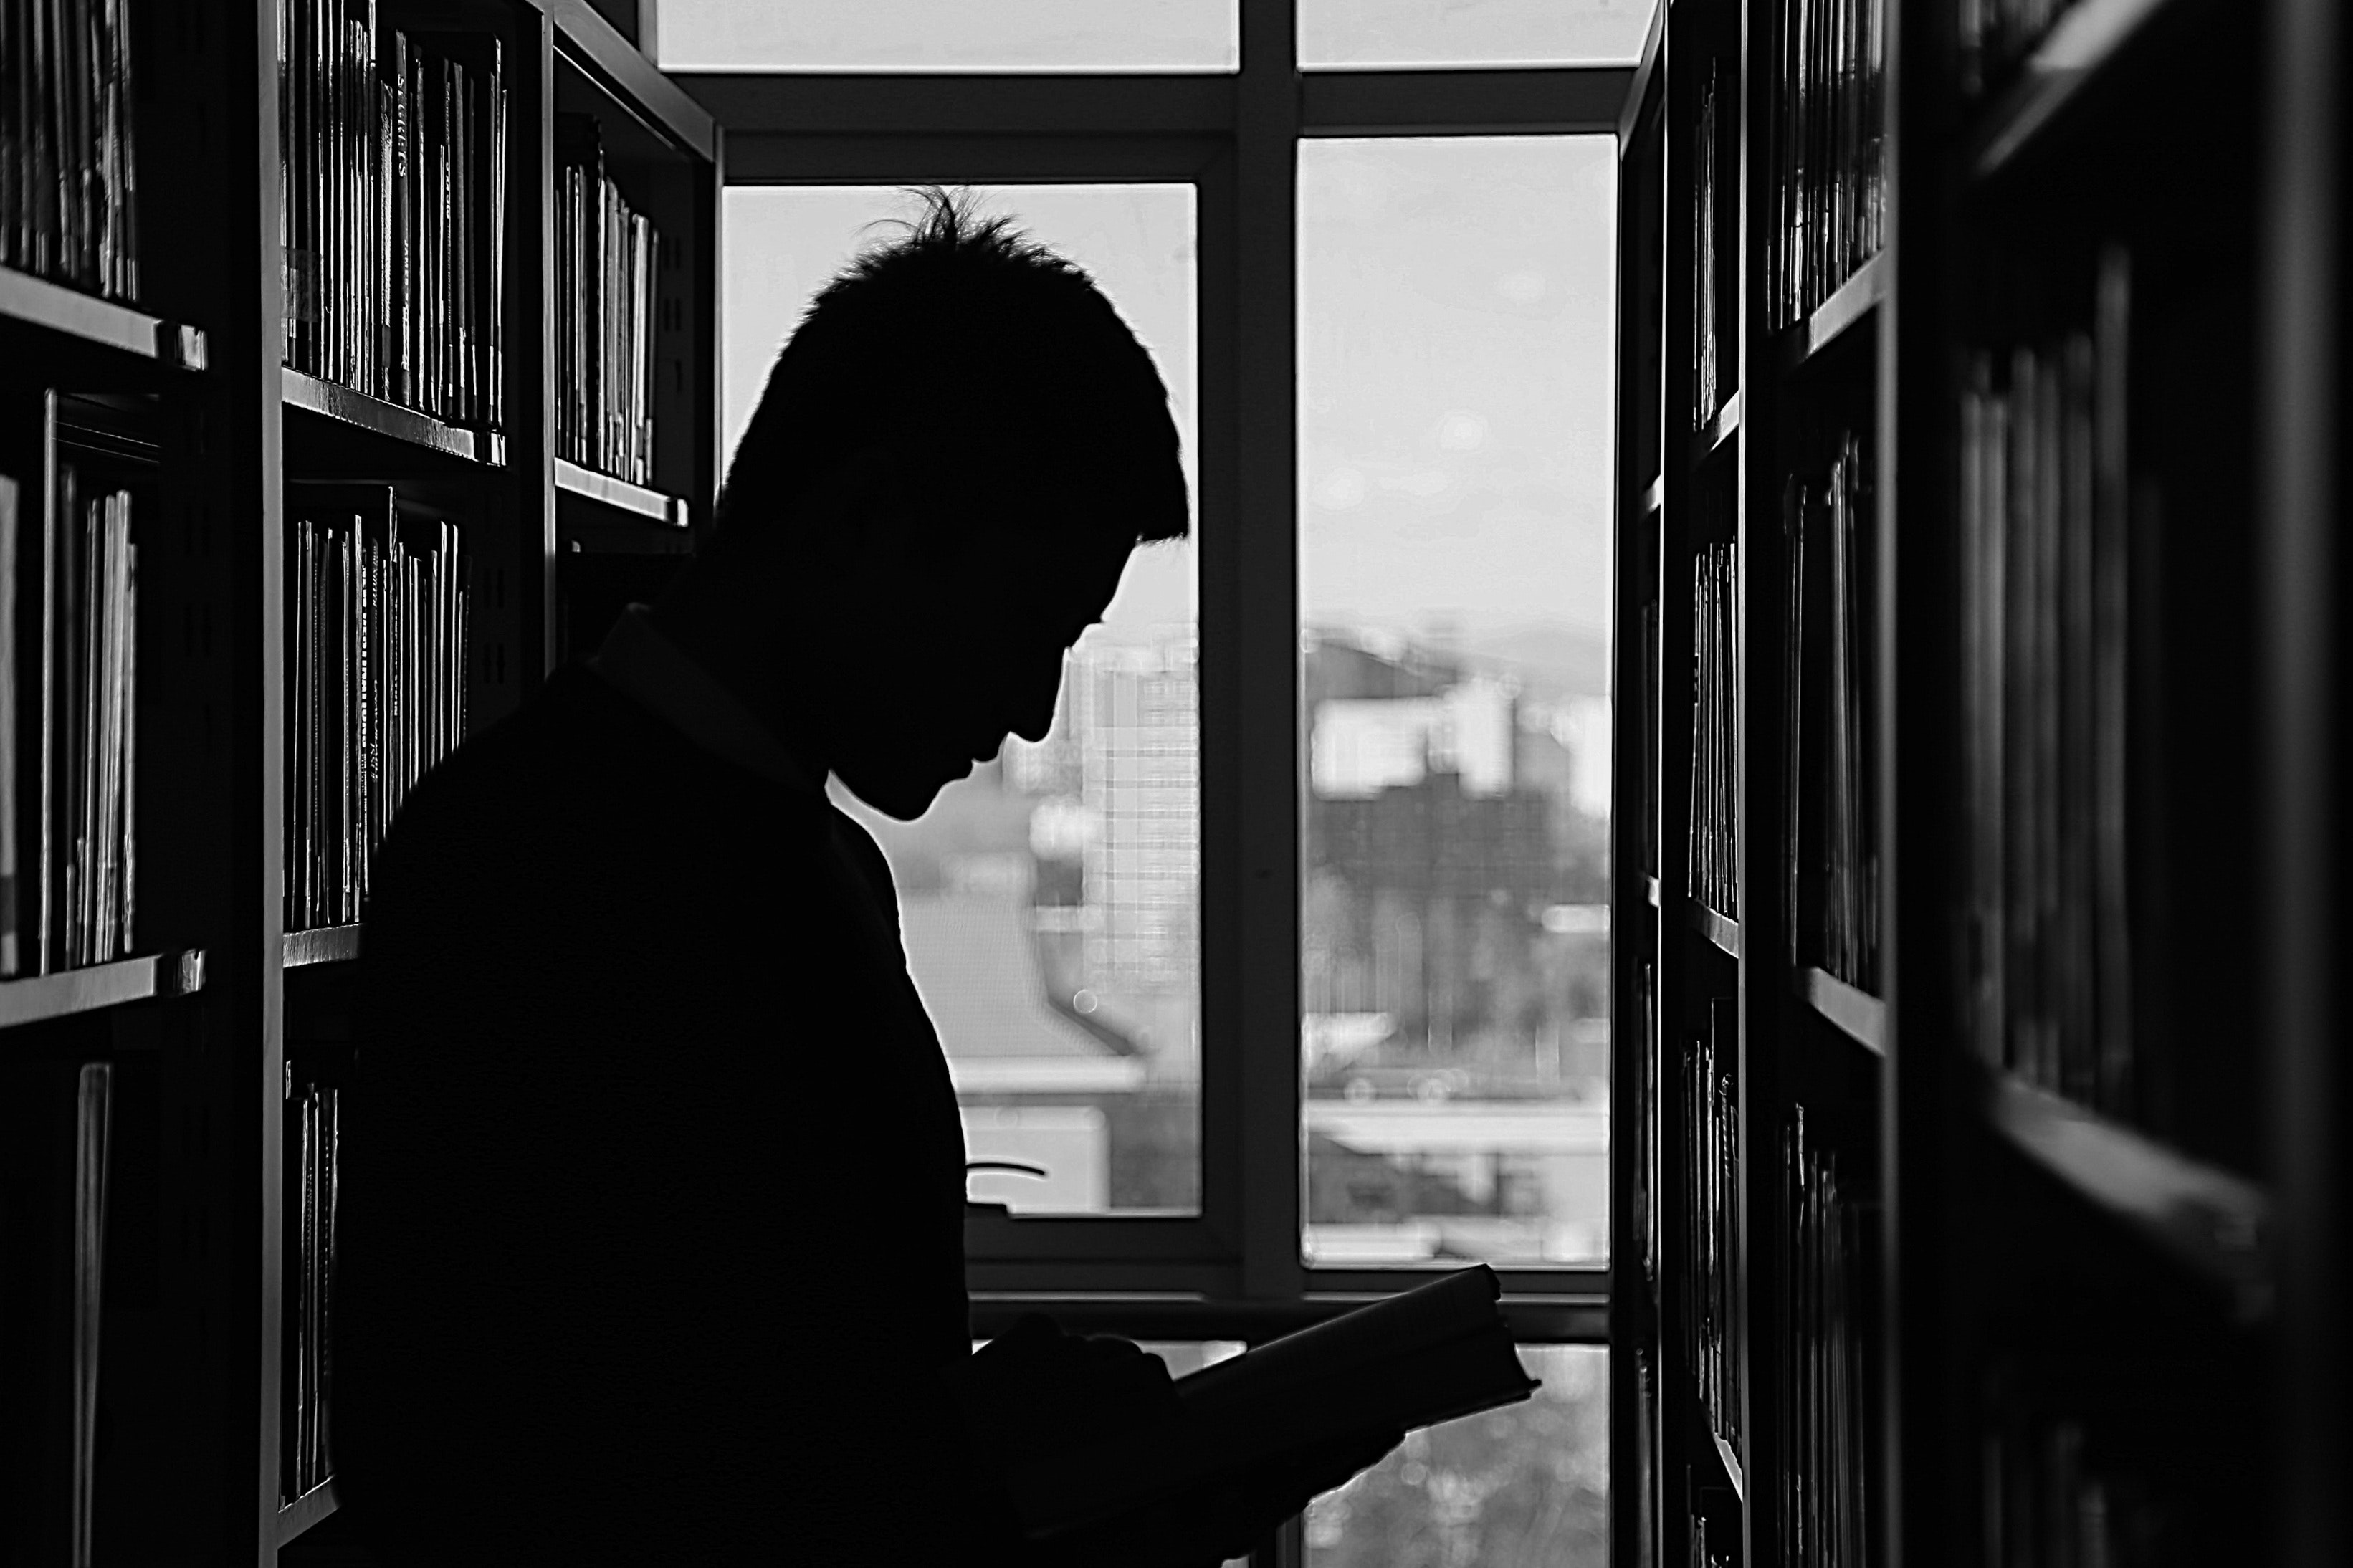 student reads a book in between two shelves at the library